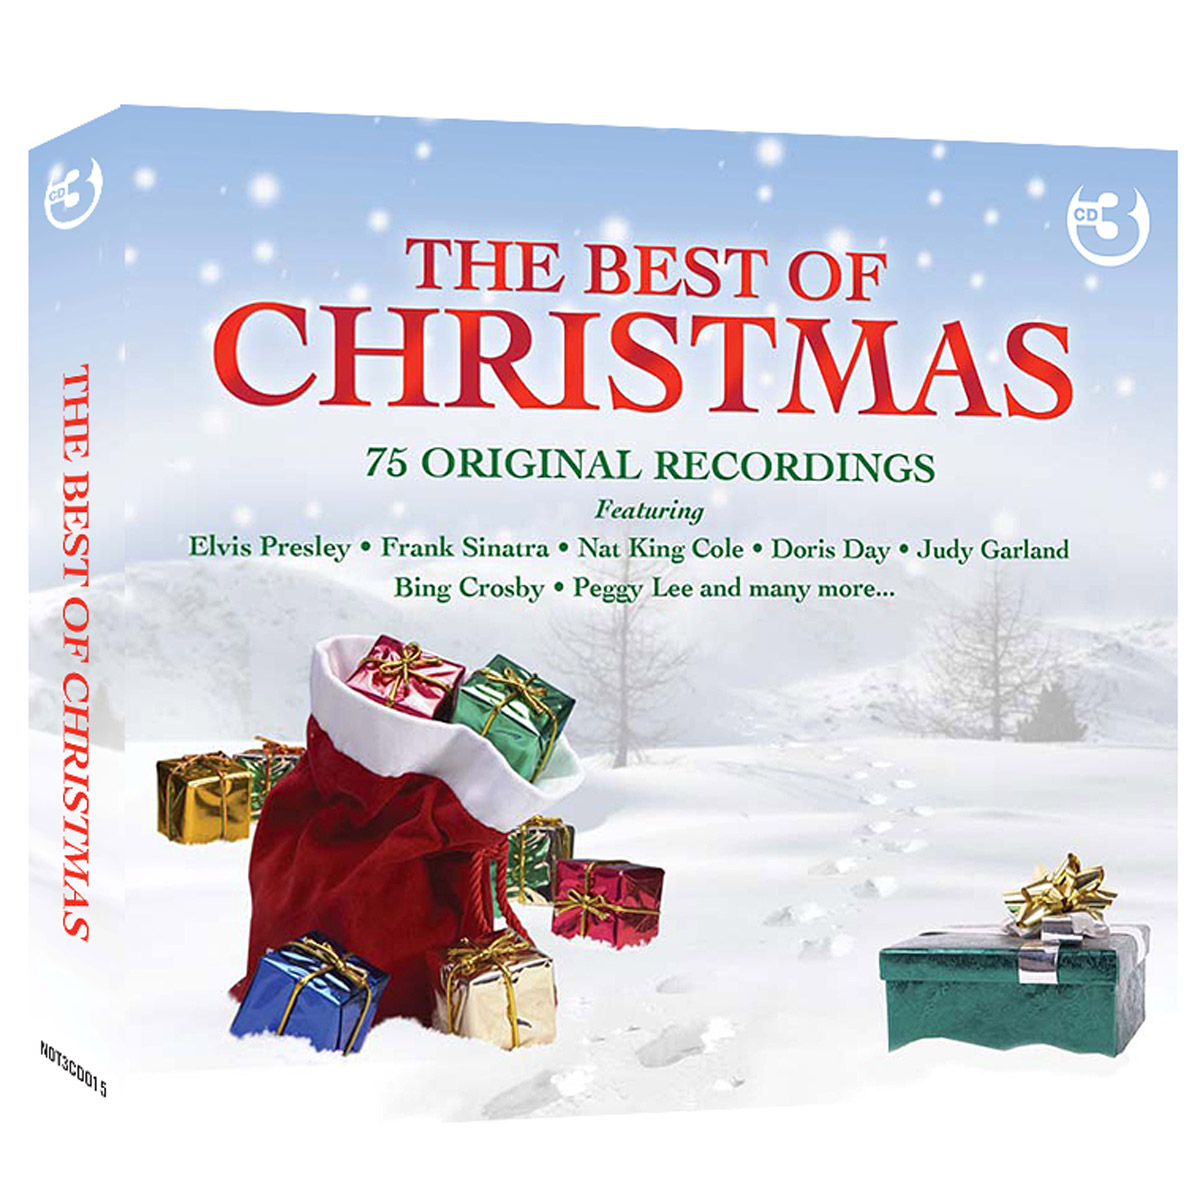 The Best of Christmas: 75 Original Recordings